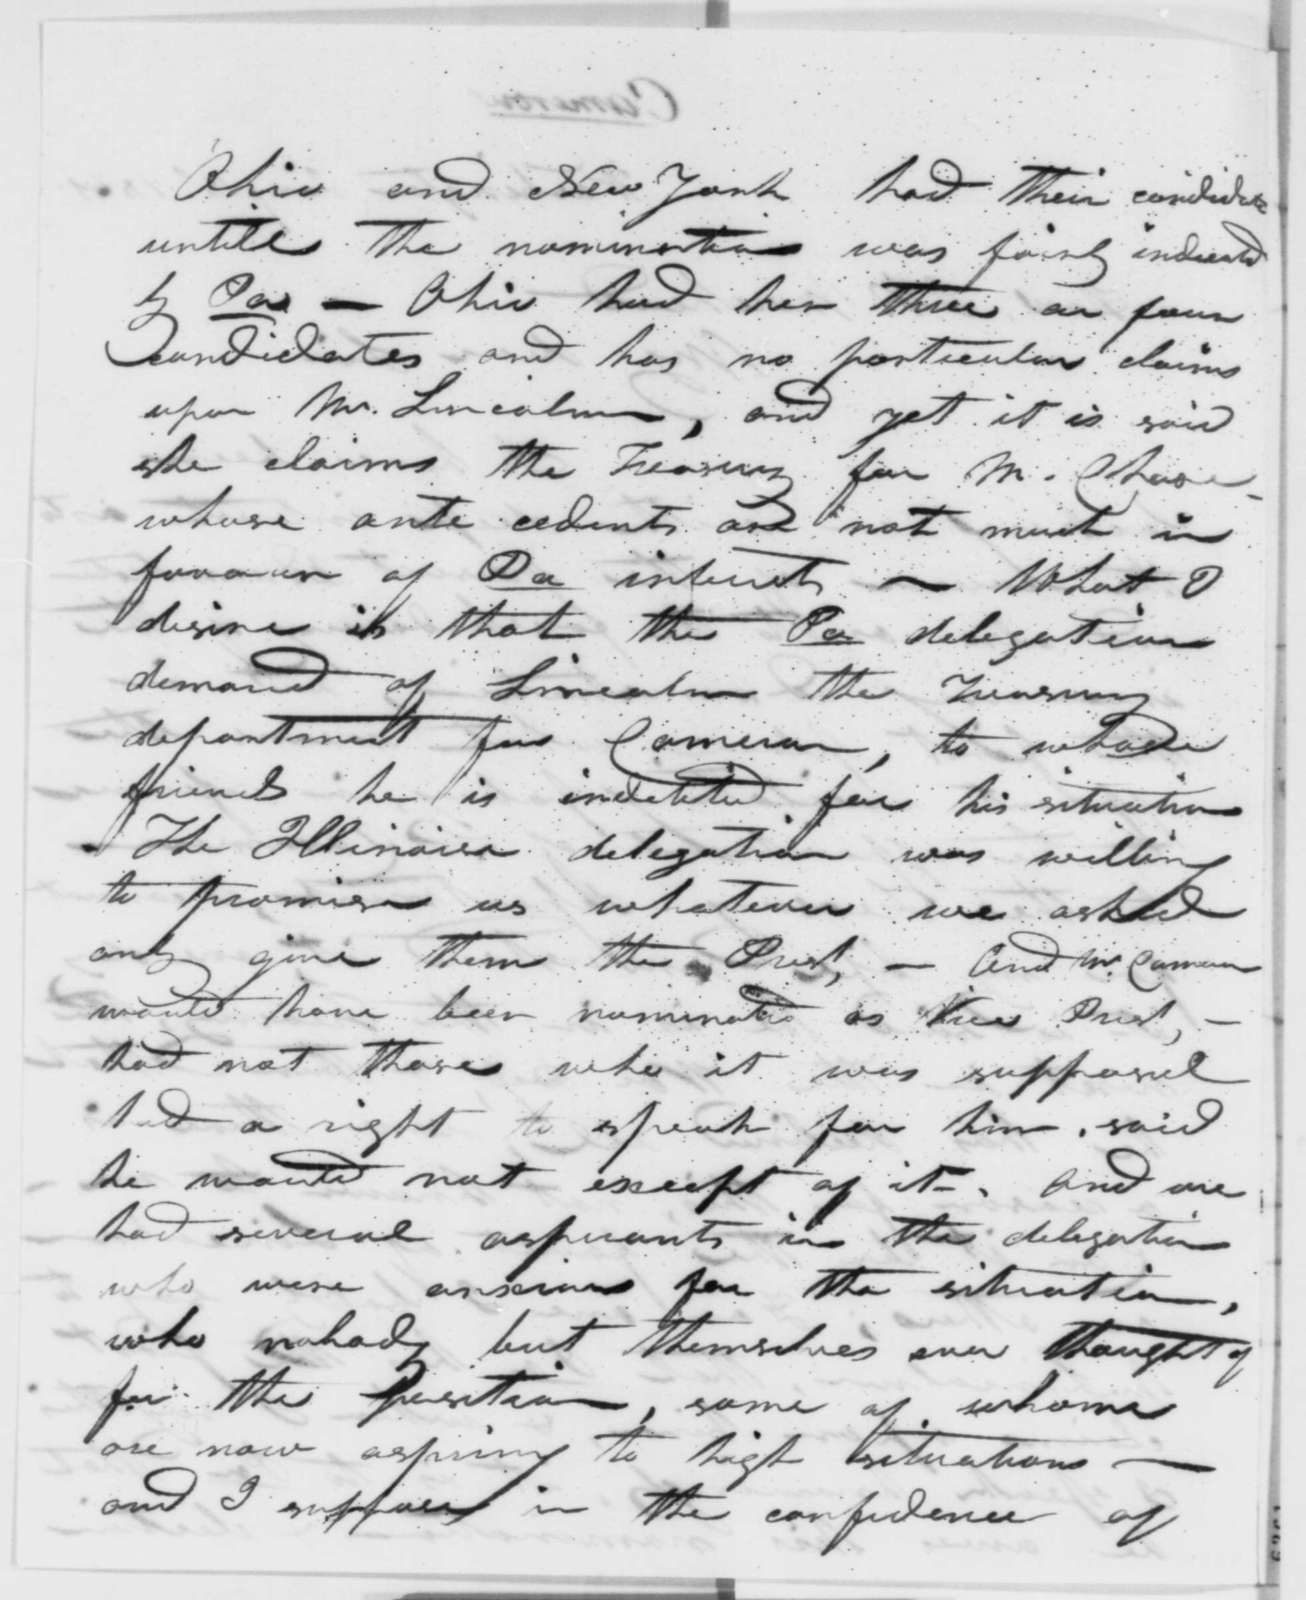 John H. Ewing to James K .Moorhead, Friday, January 18, 1861  (Cameron and the cabinet)